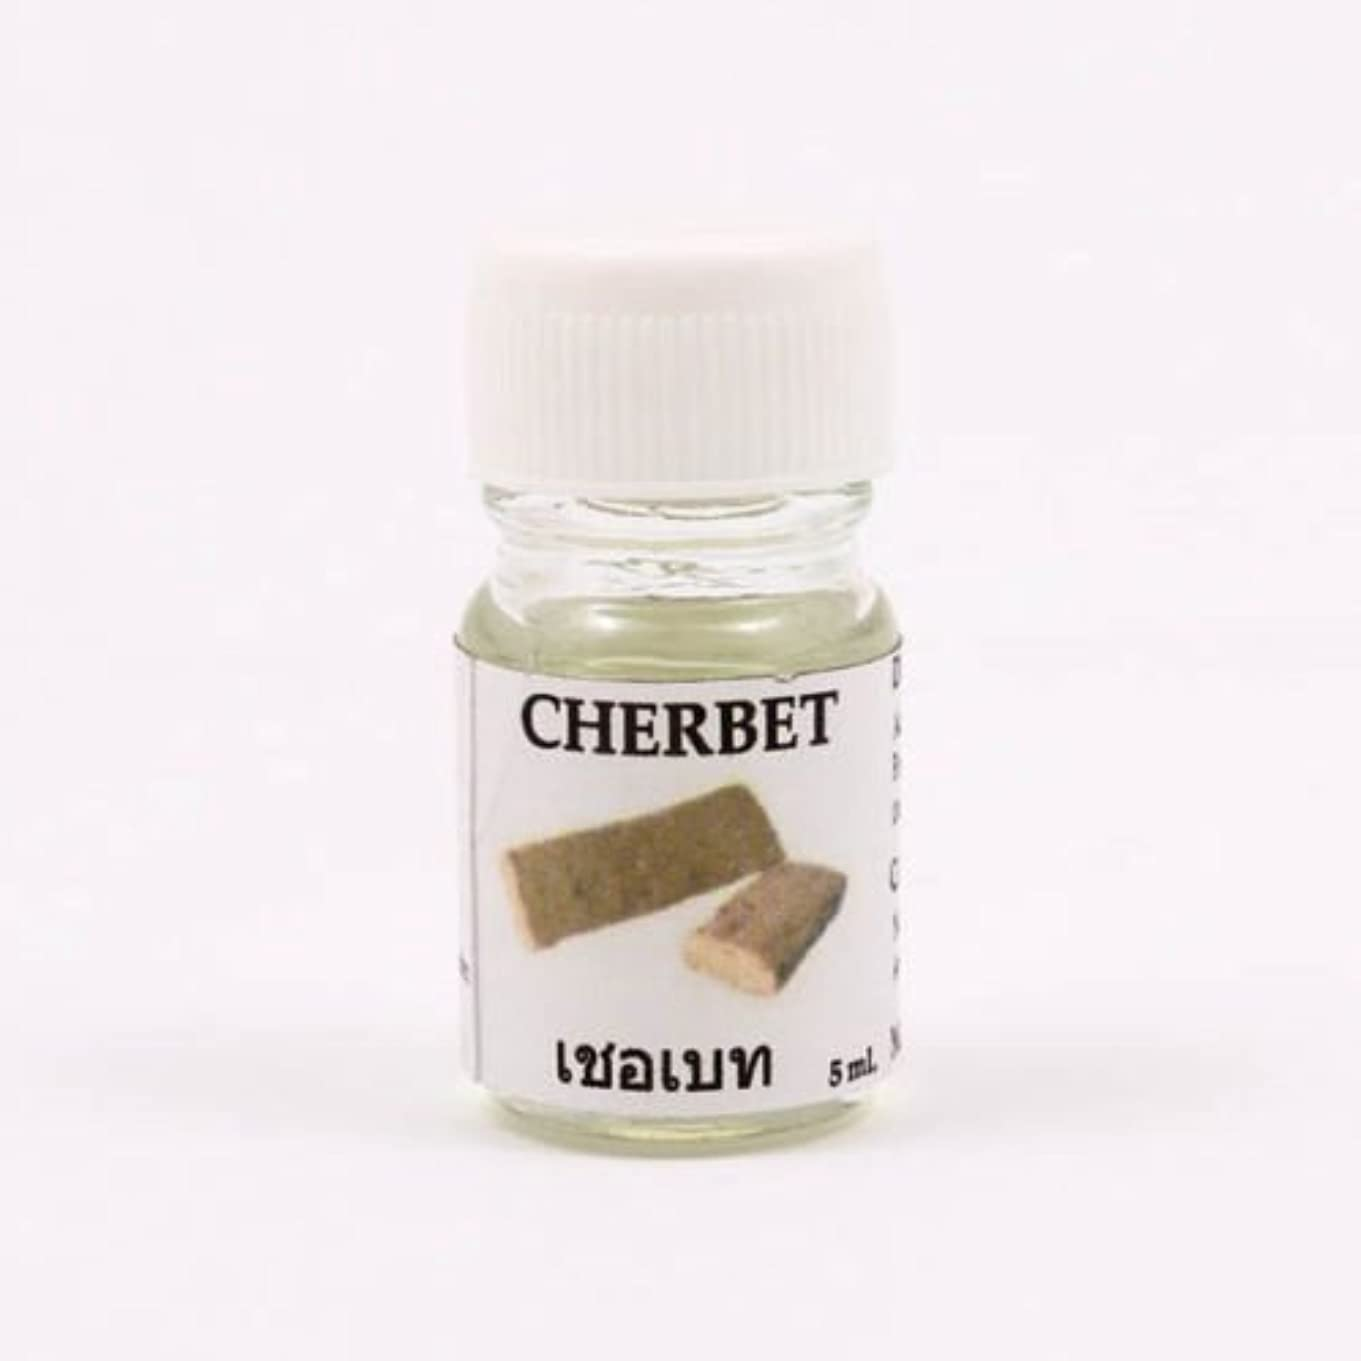 見物人極小賢明な6X Cherbet Aroma Fragrance Essential Oil 5ML. (cc) Diffuser Burner Therapy